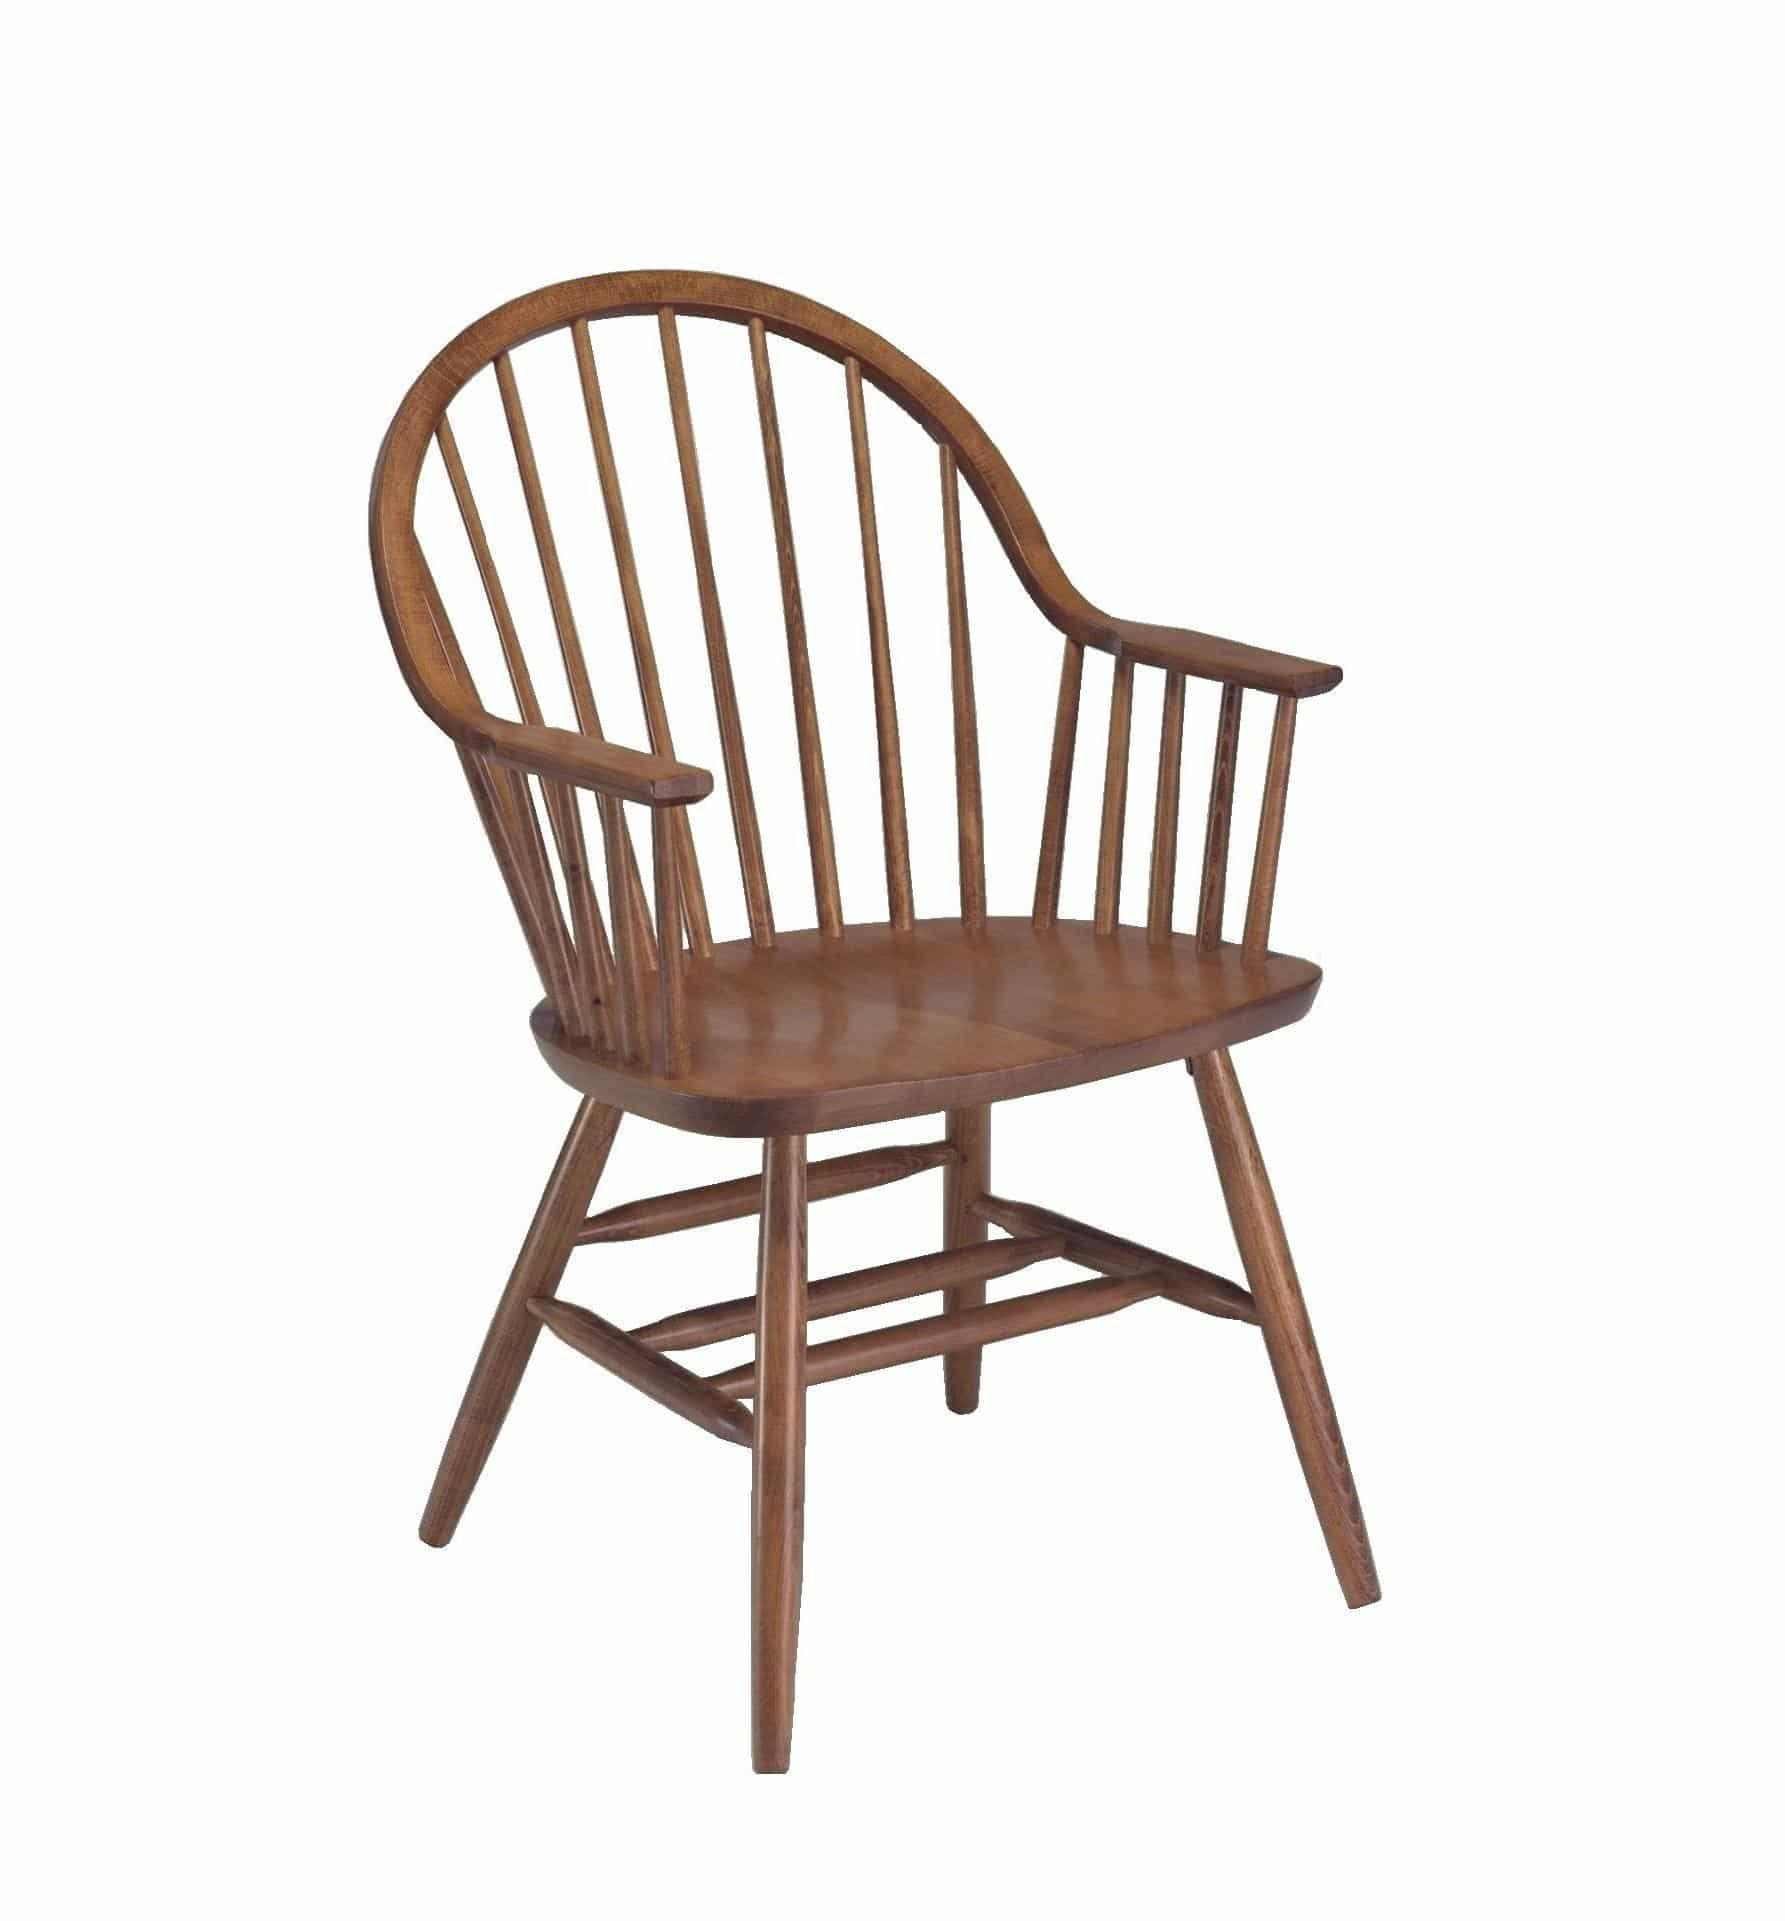 Colonial Windsor Arm Chair With Spindle Back Model 25